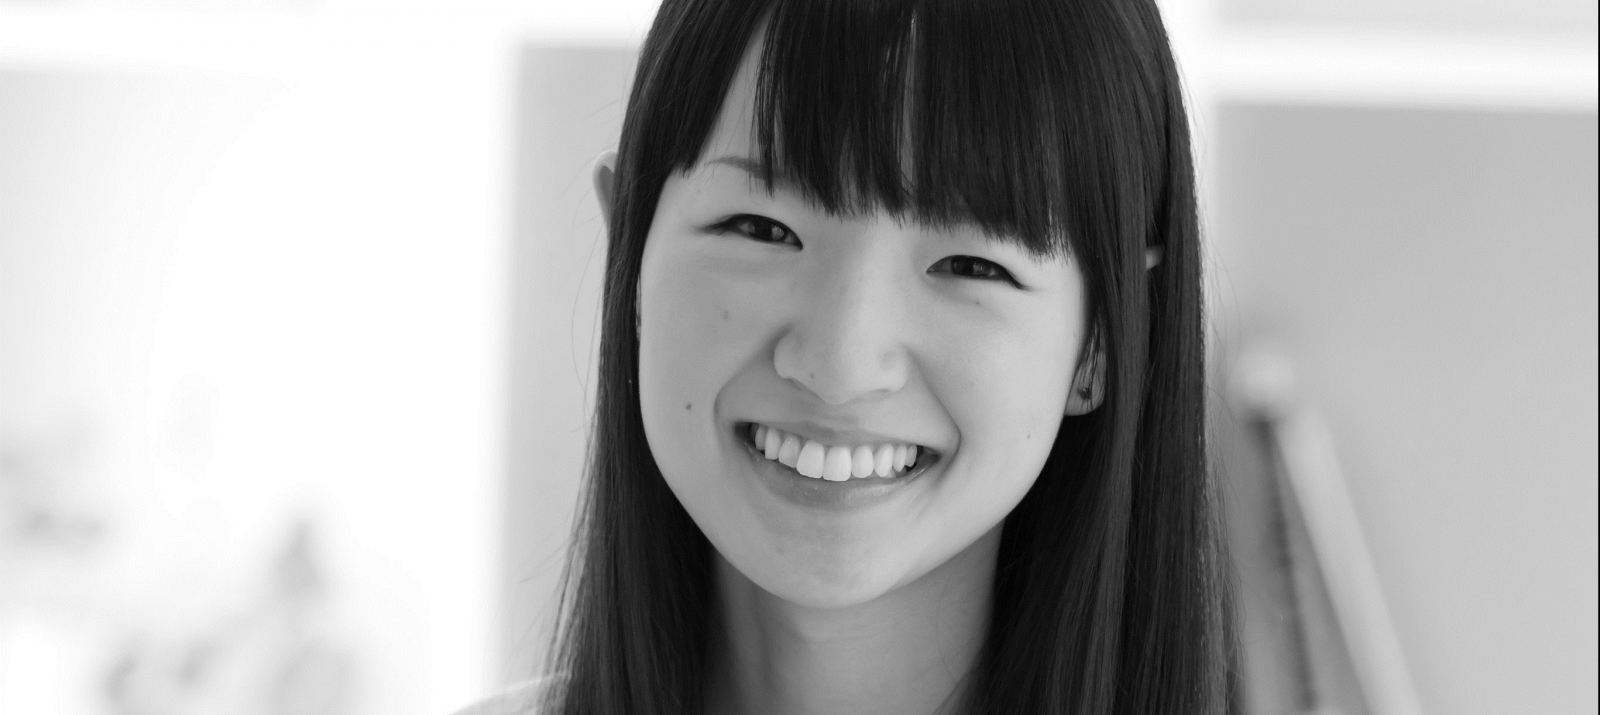 Marie Kondo a famous organizing consultant from Japan and best-selling author of The Life-Changing Magic of Tidying Up: The Japanese Art of Decluttering and Organizing.